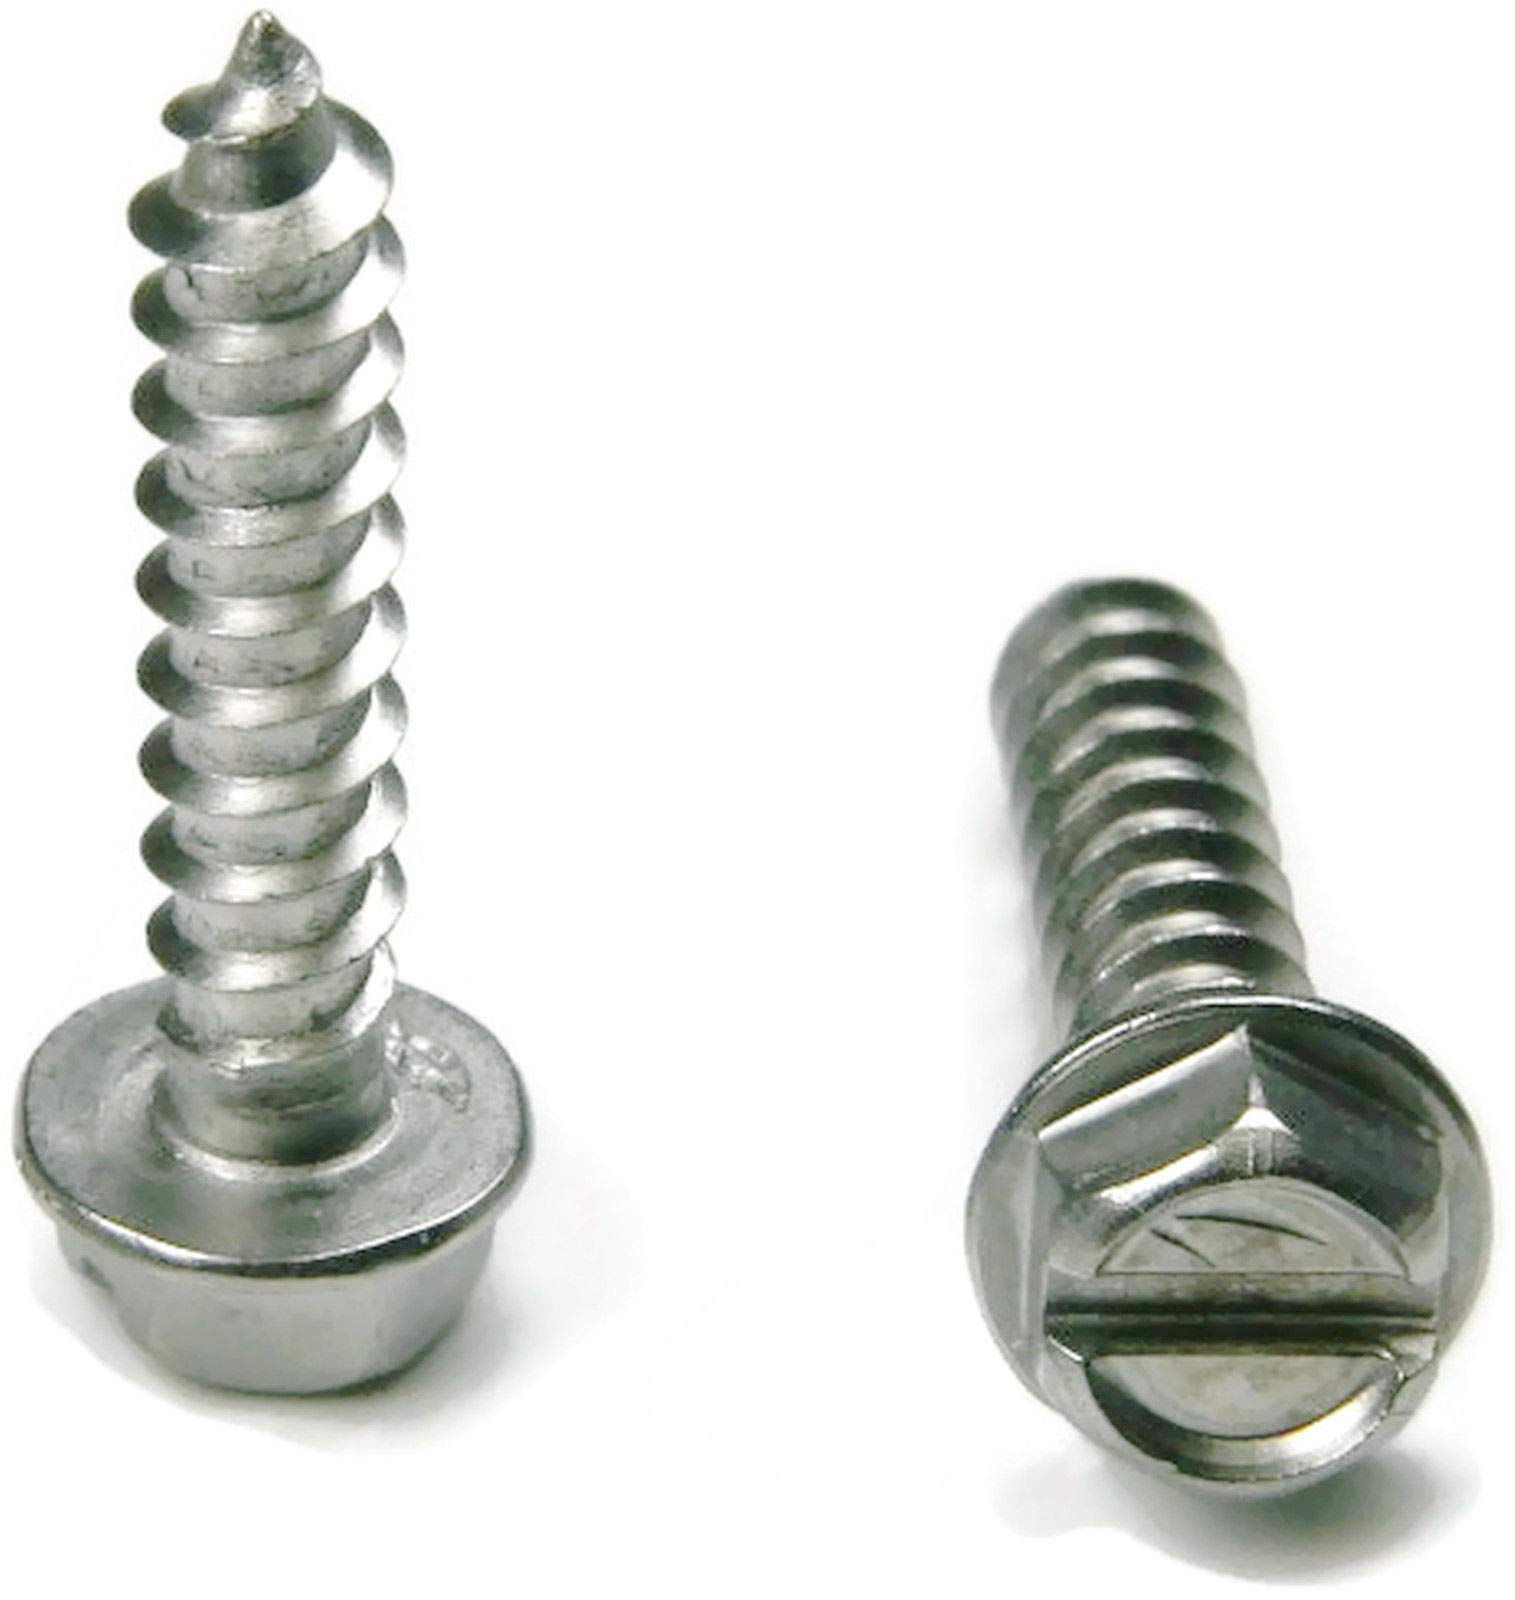 Stainless Steel Slotted Hex Indented Head Sheet Metal Screw #12 x 3, Packedge Quantity 250 - Quality Assurance from JumpingBolt